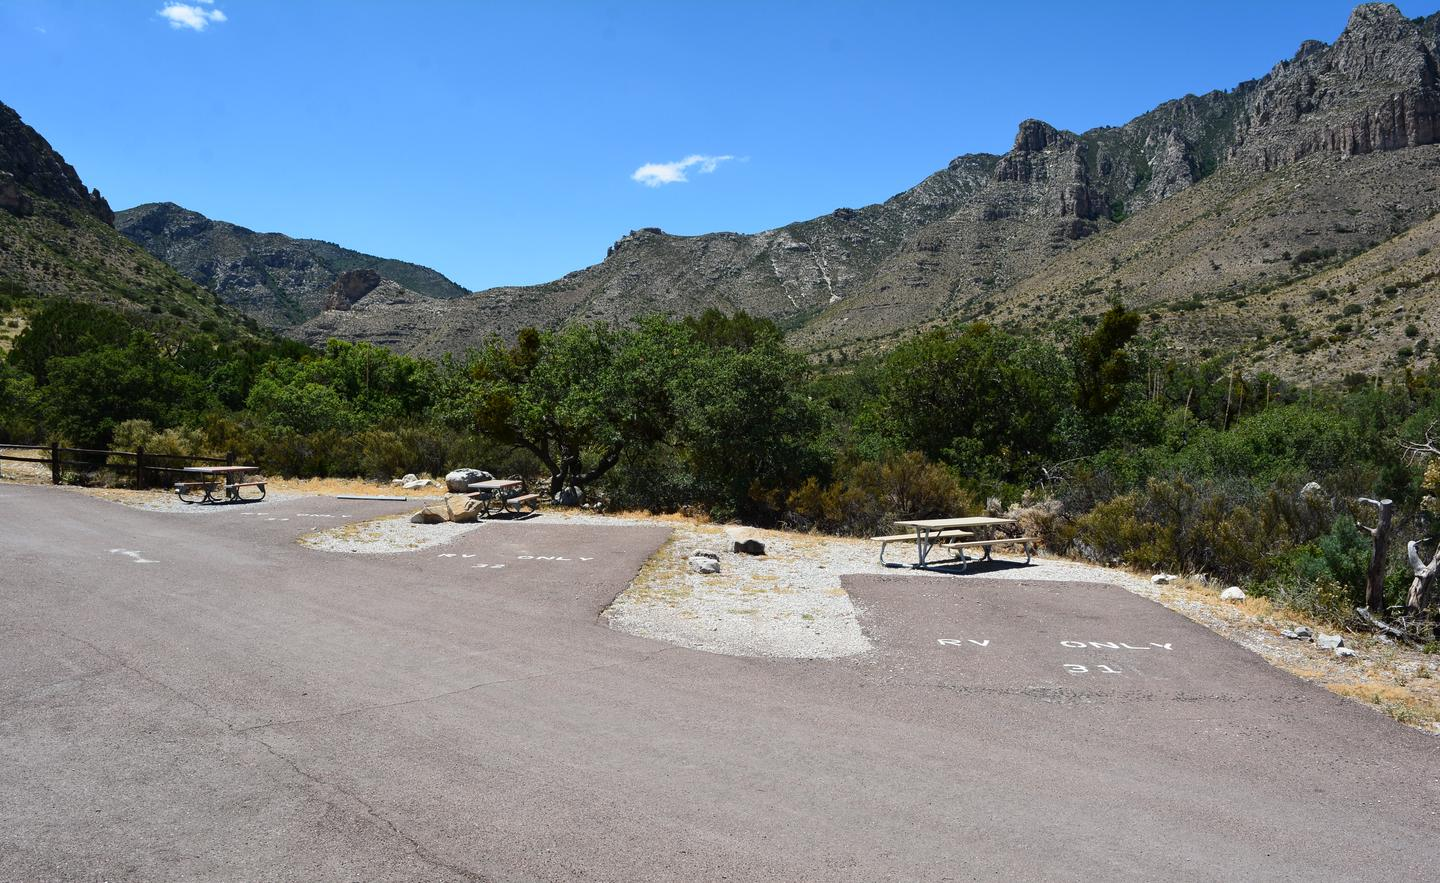 Overview of RV campsites 31, 32 and 33.  Each paved site has a picnic table and mountain views.Overview of RV campsites 31, 32 and 33.